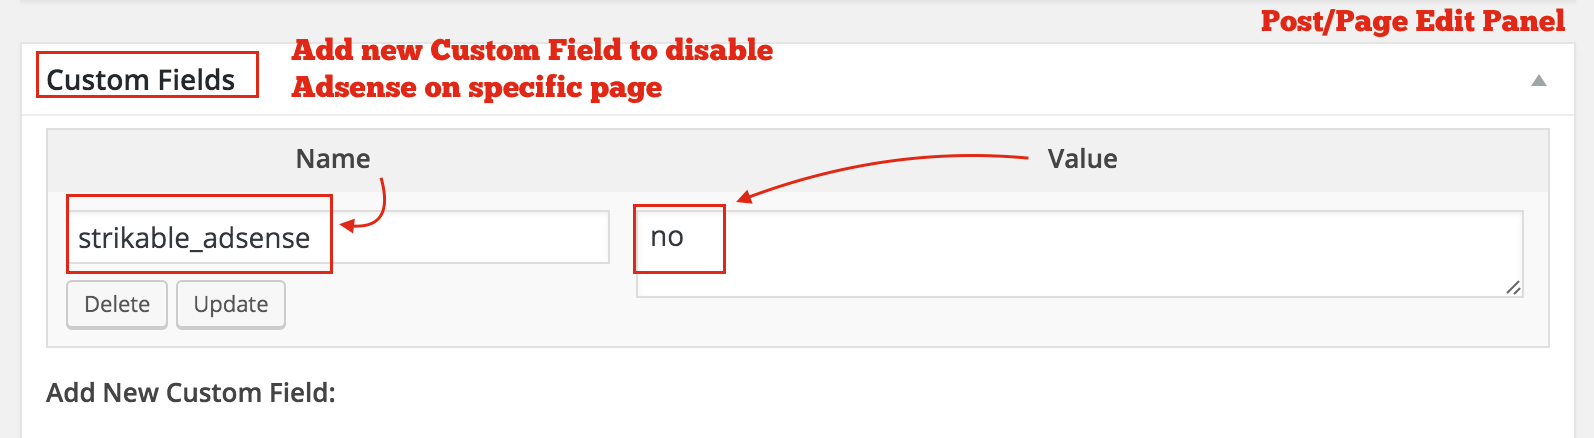 Disable Adsense on Specific Post/Page - Add Custom Field <code>crunchify_adsense</code> with value <code>no</code>